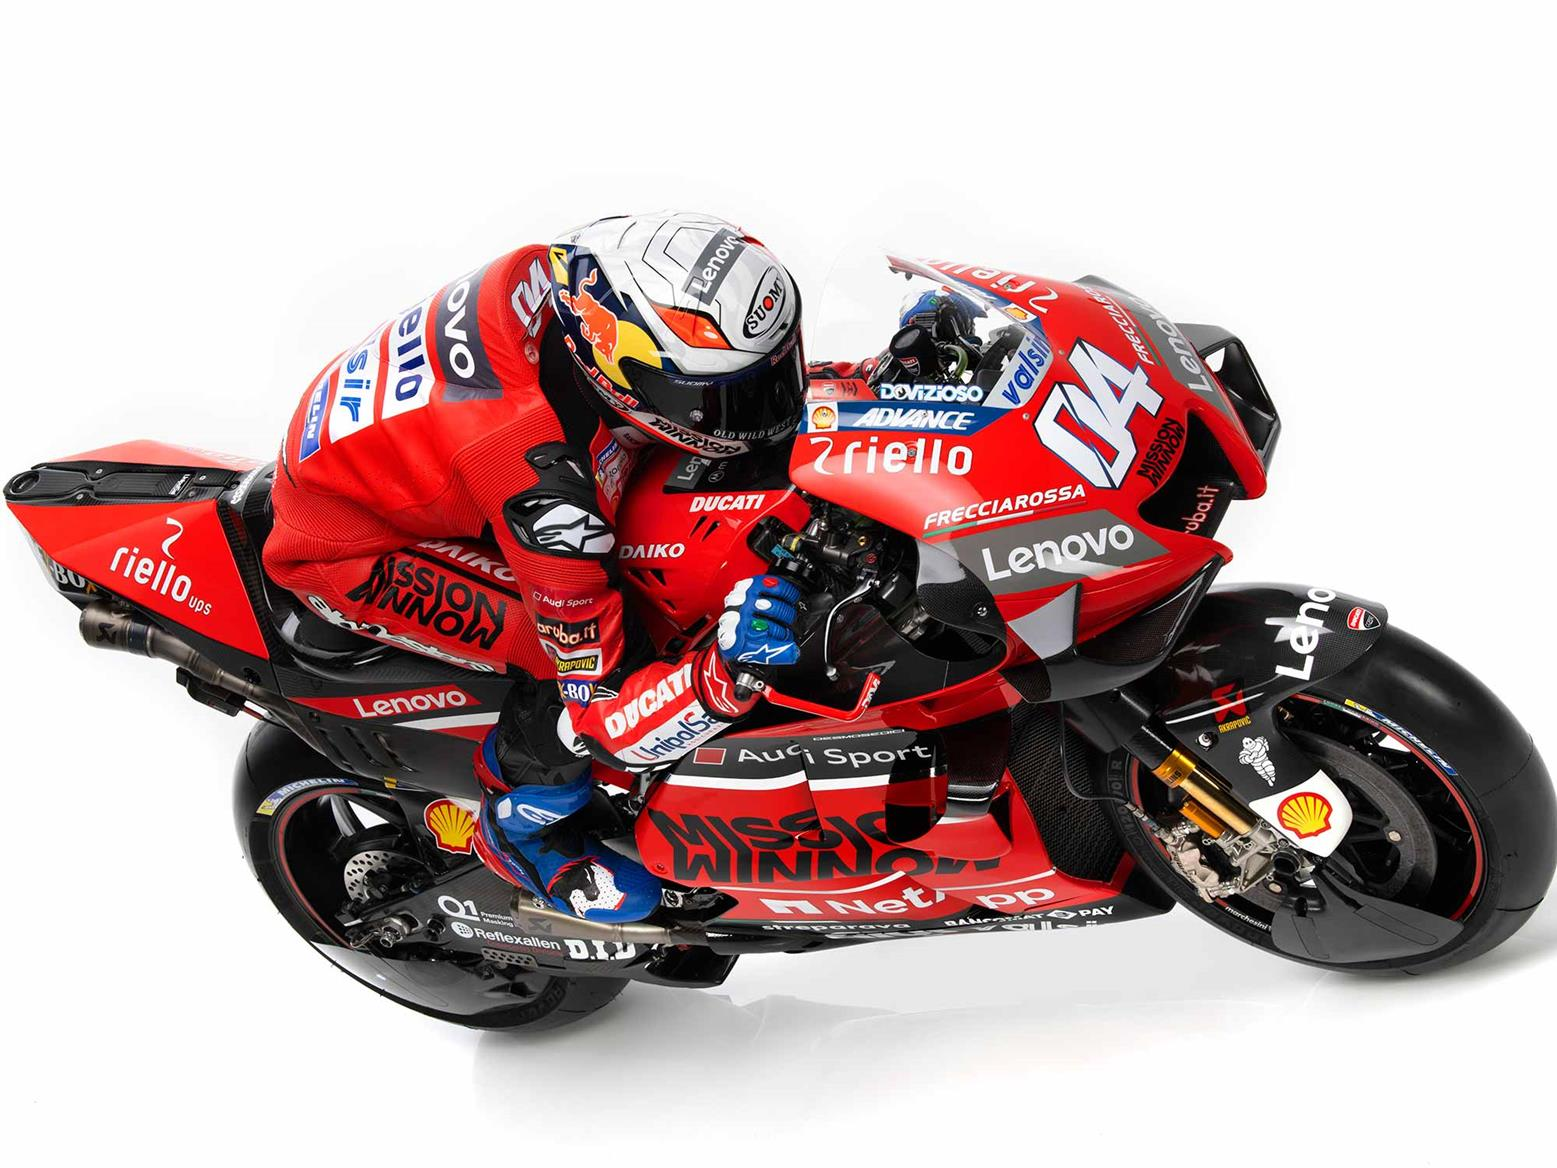 Dovizioso with the GP20 livery